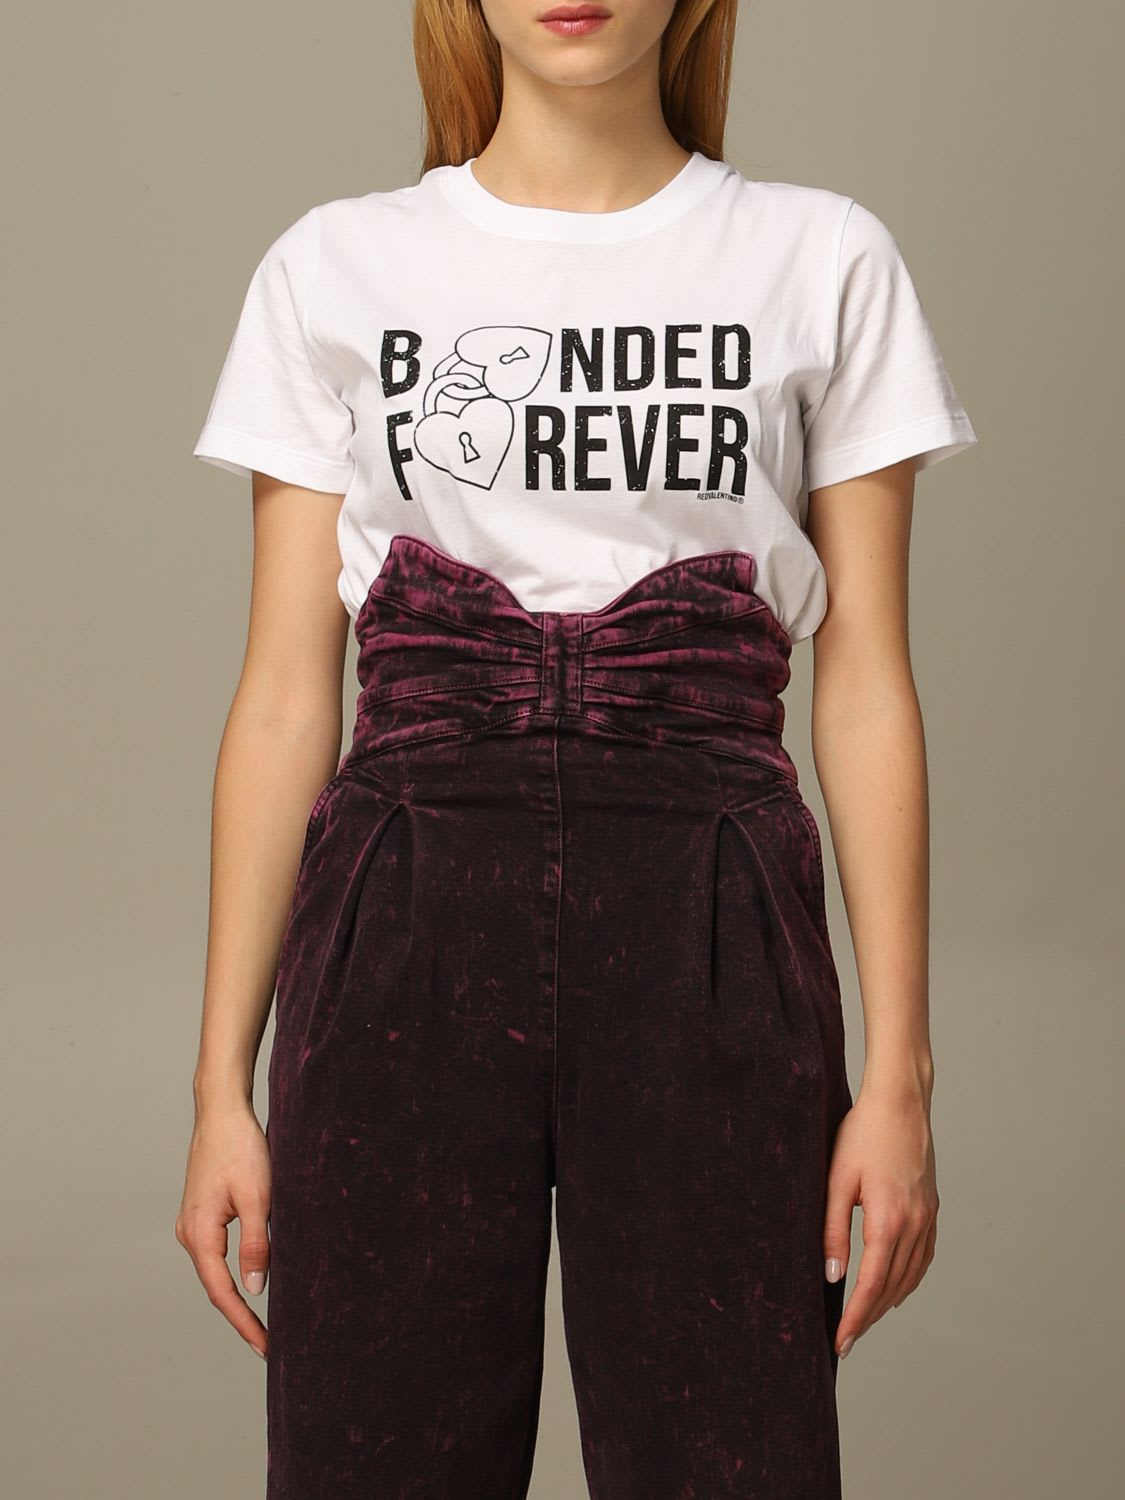 Red Valentino T-shirt Red Valentino Cotton T-shirt With Bonded Forever Print